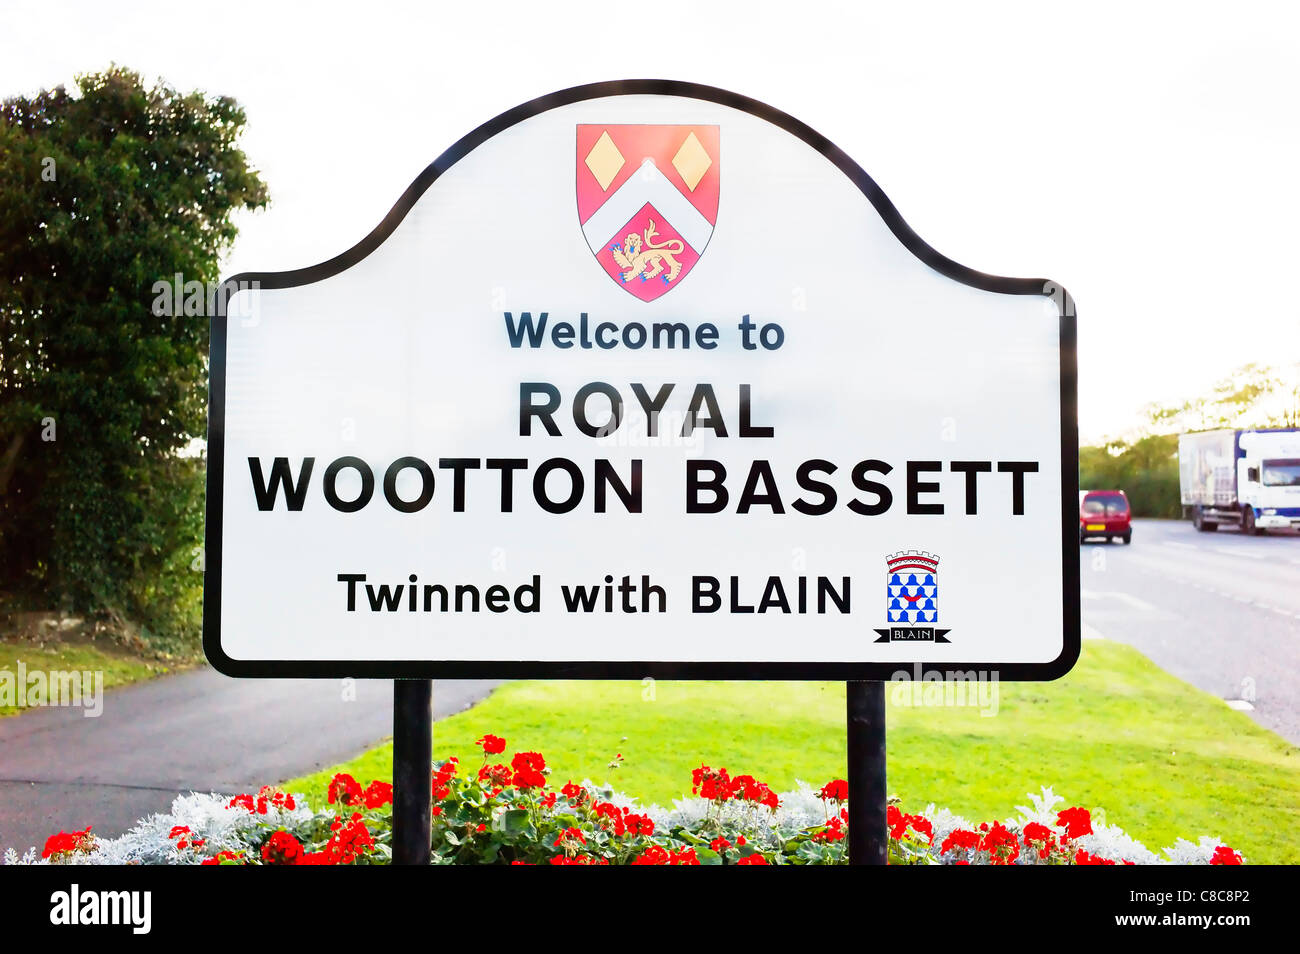 Sign for Royal Wootton Bassett inaugurated in October 2011 in Wiltshire UK Stock Photo